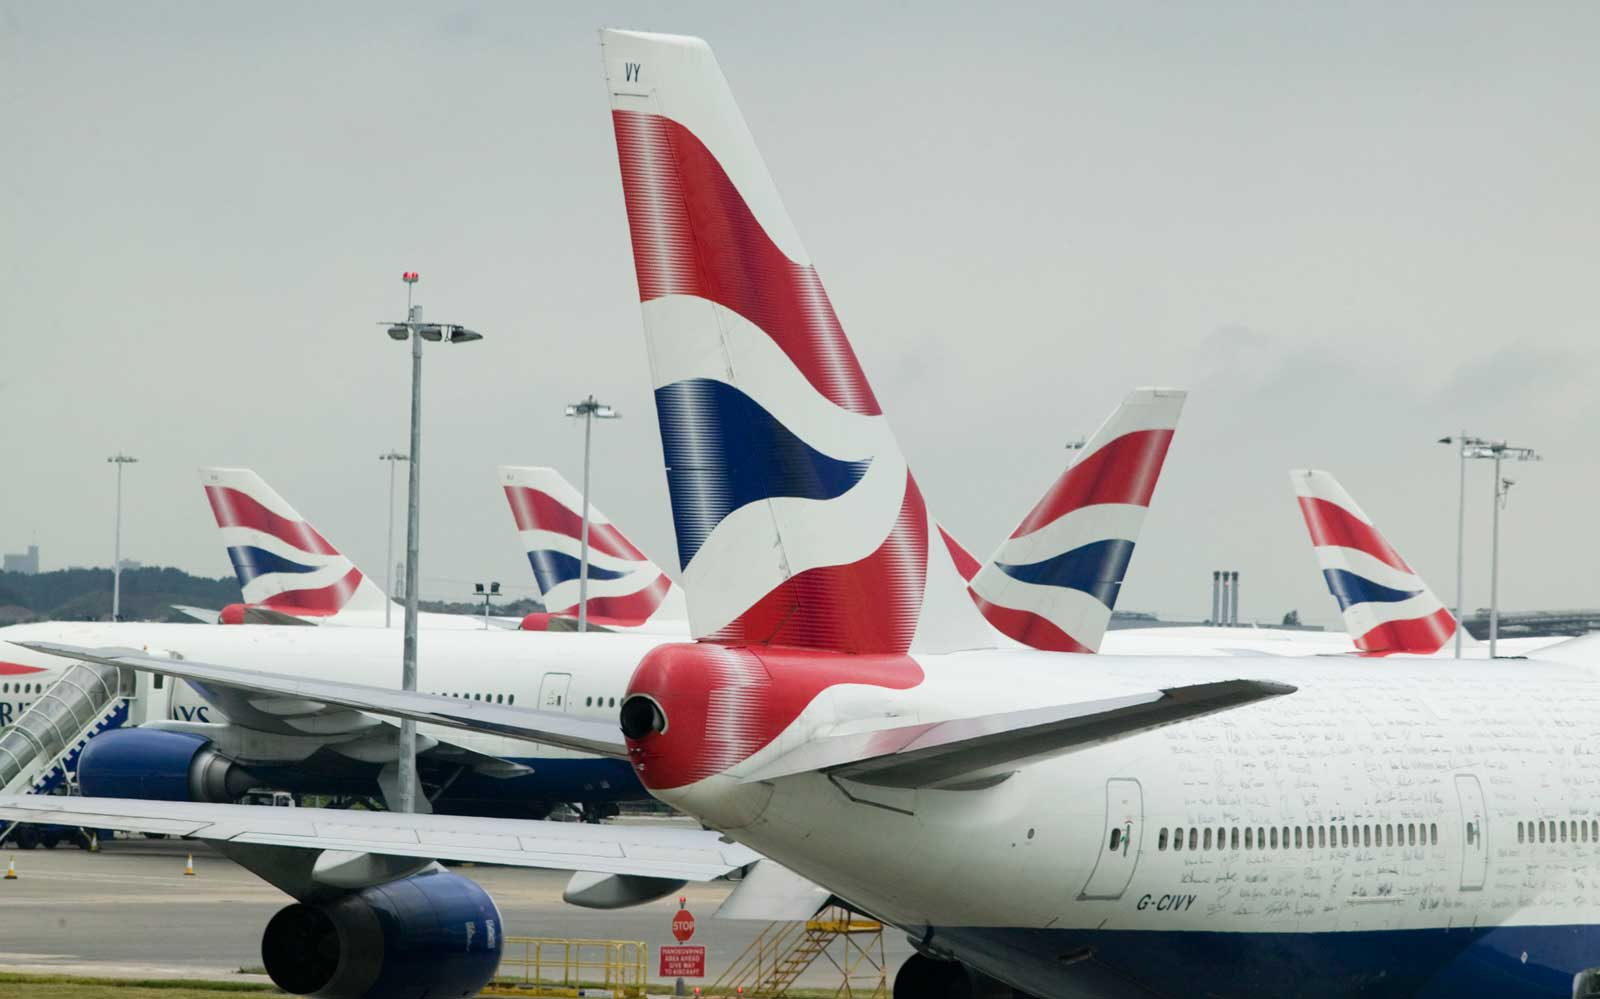 The British Airways Data Breach Affects 380,000 Customers — Here's What to Know